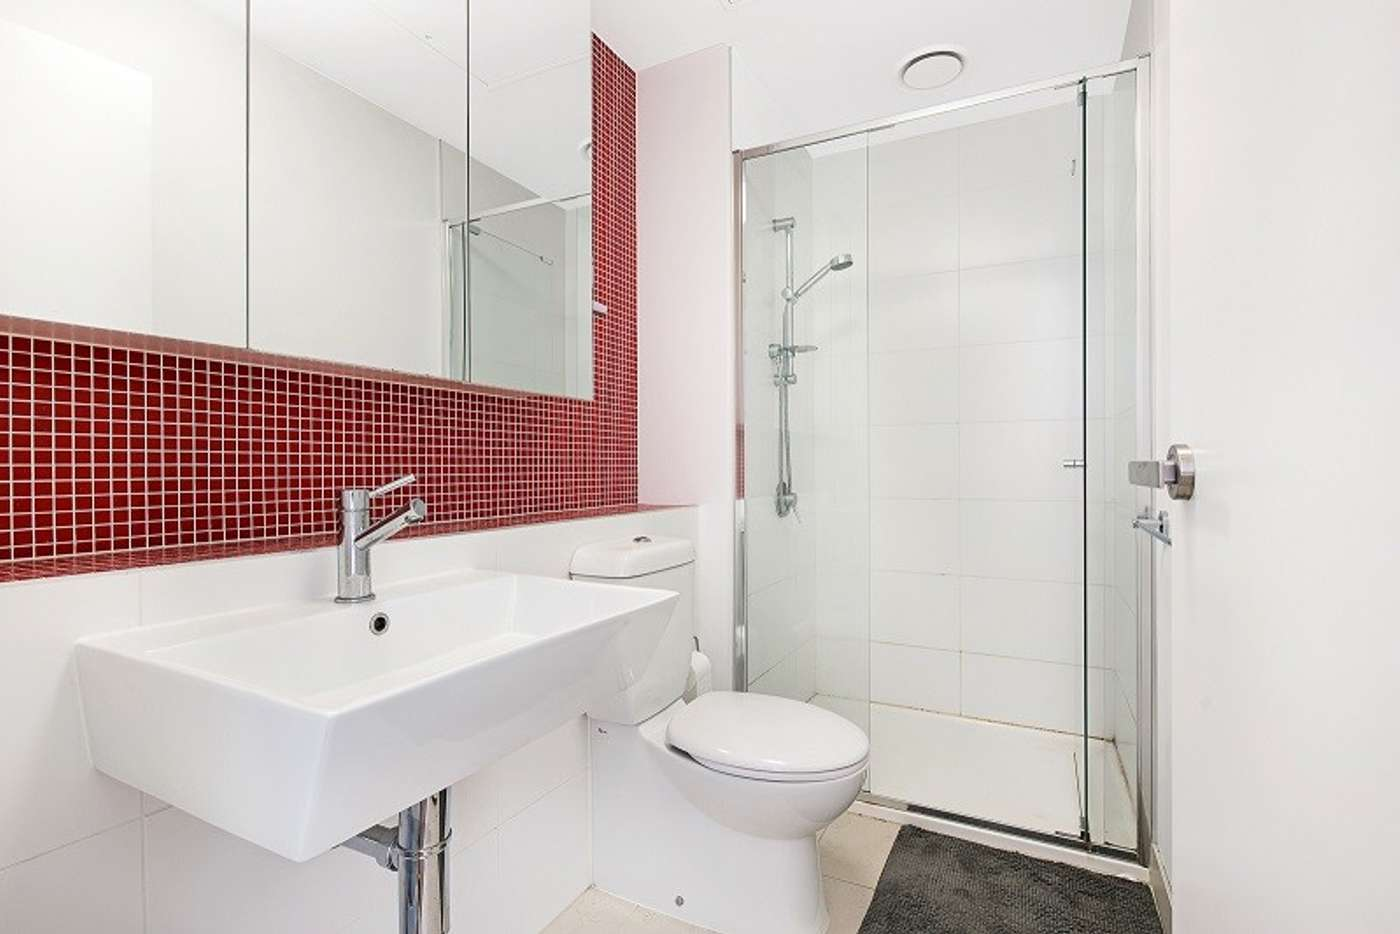 Sixth view of Homely apartment listing, 2406/639 Lonsdale st, Melbourne VIC 3000